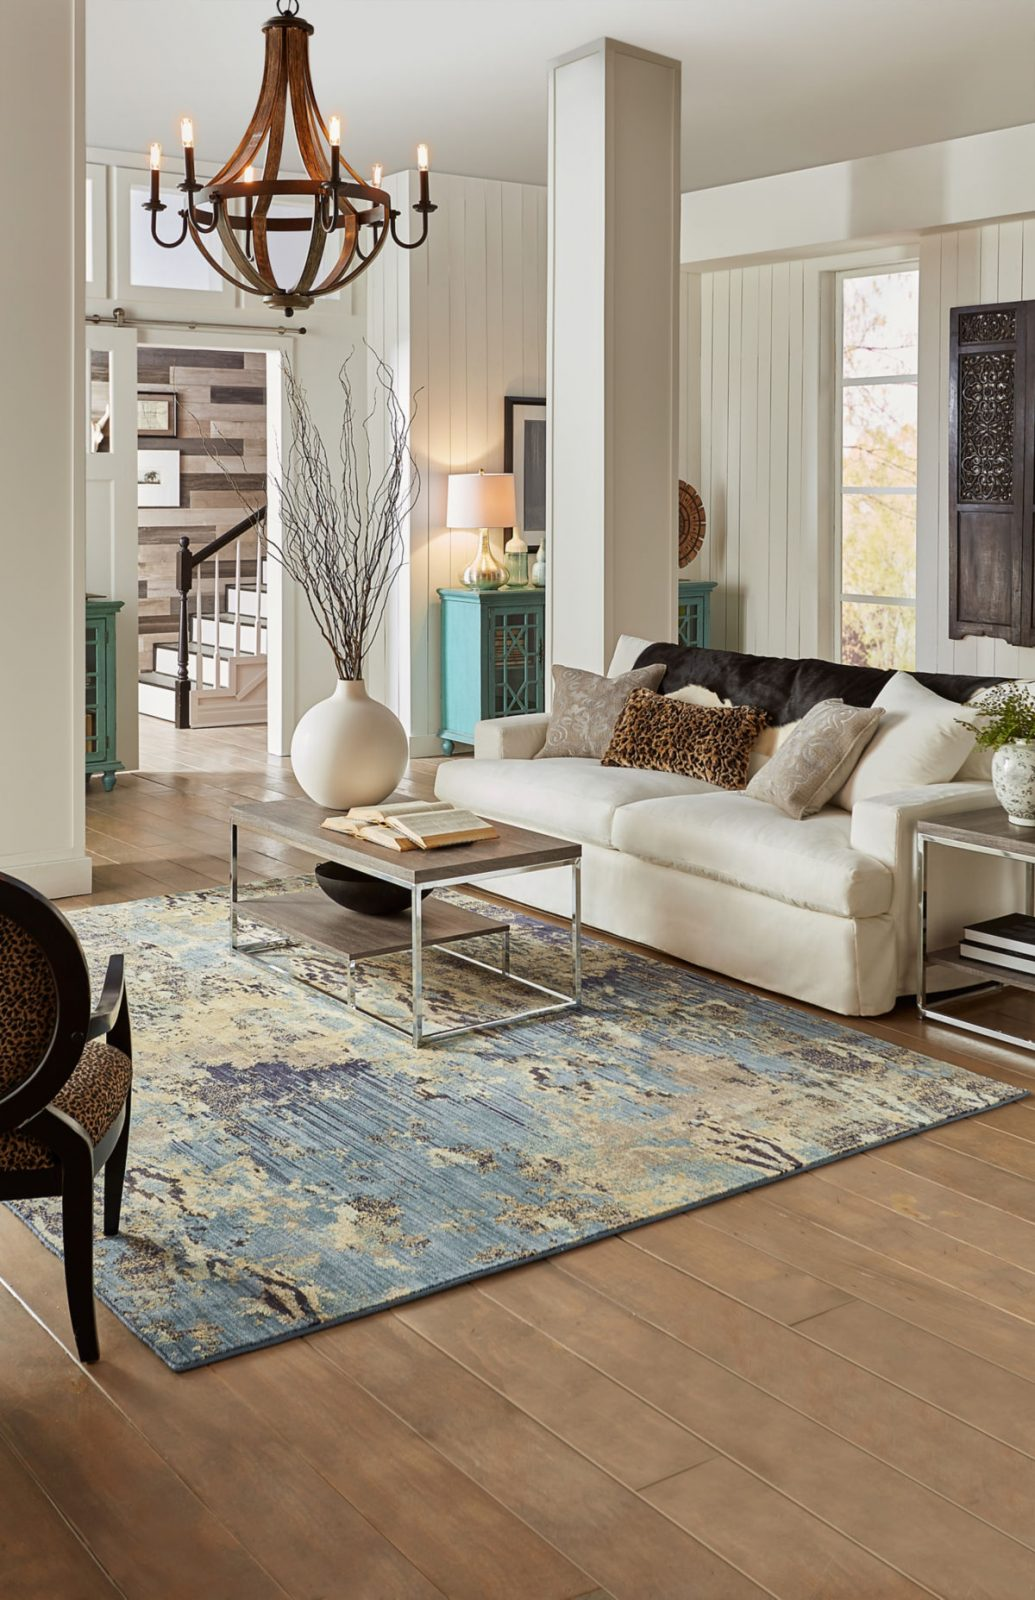 karastan-rug | Hampton Flooring Center